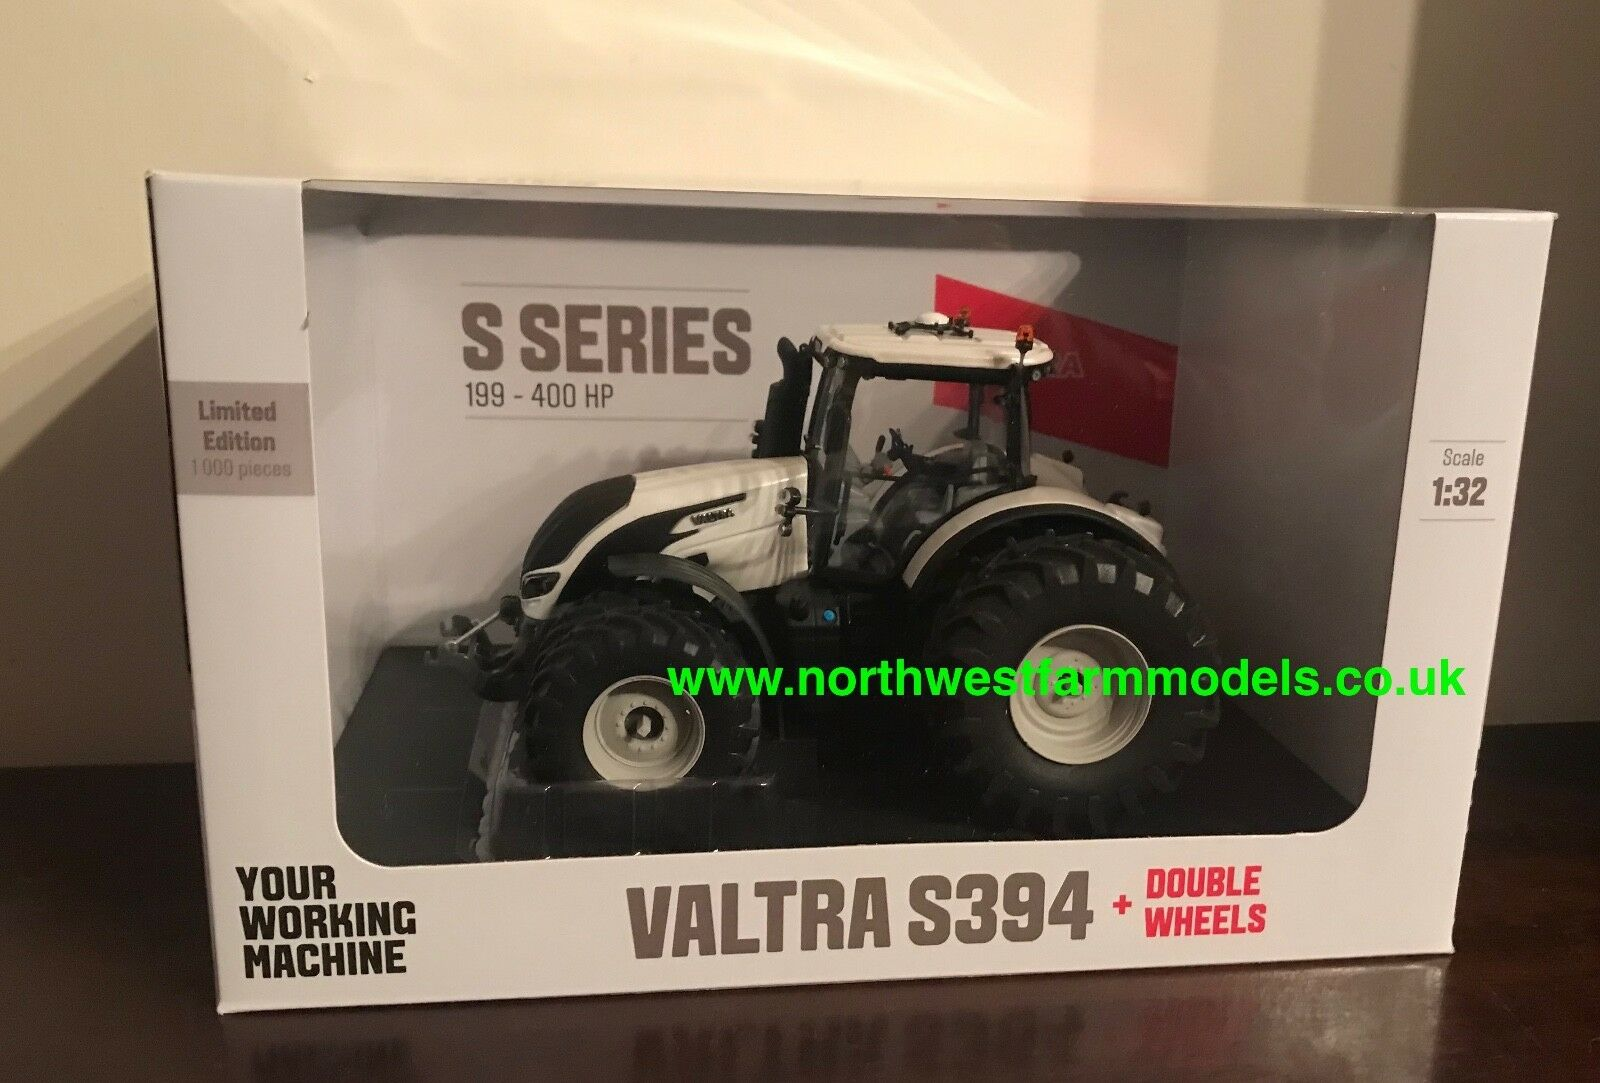 UNIVERSAL HOBBIES 1 32 SCALE 5242 VALTRA S394 WITH DUAL WHEELS (WHITE) 1000 pcs